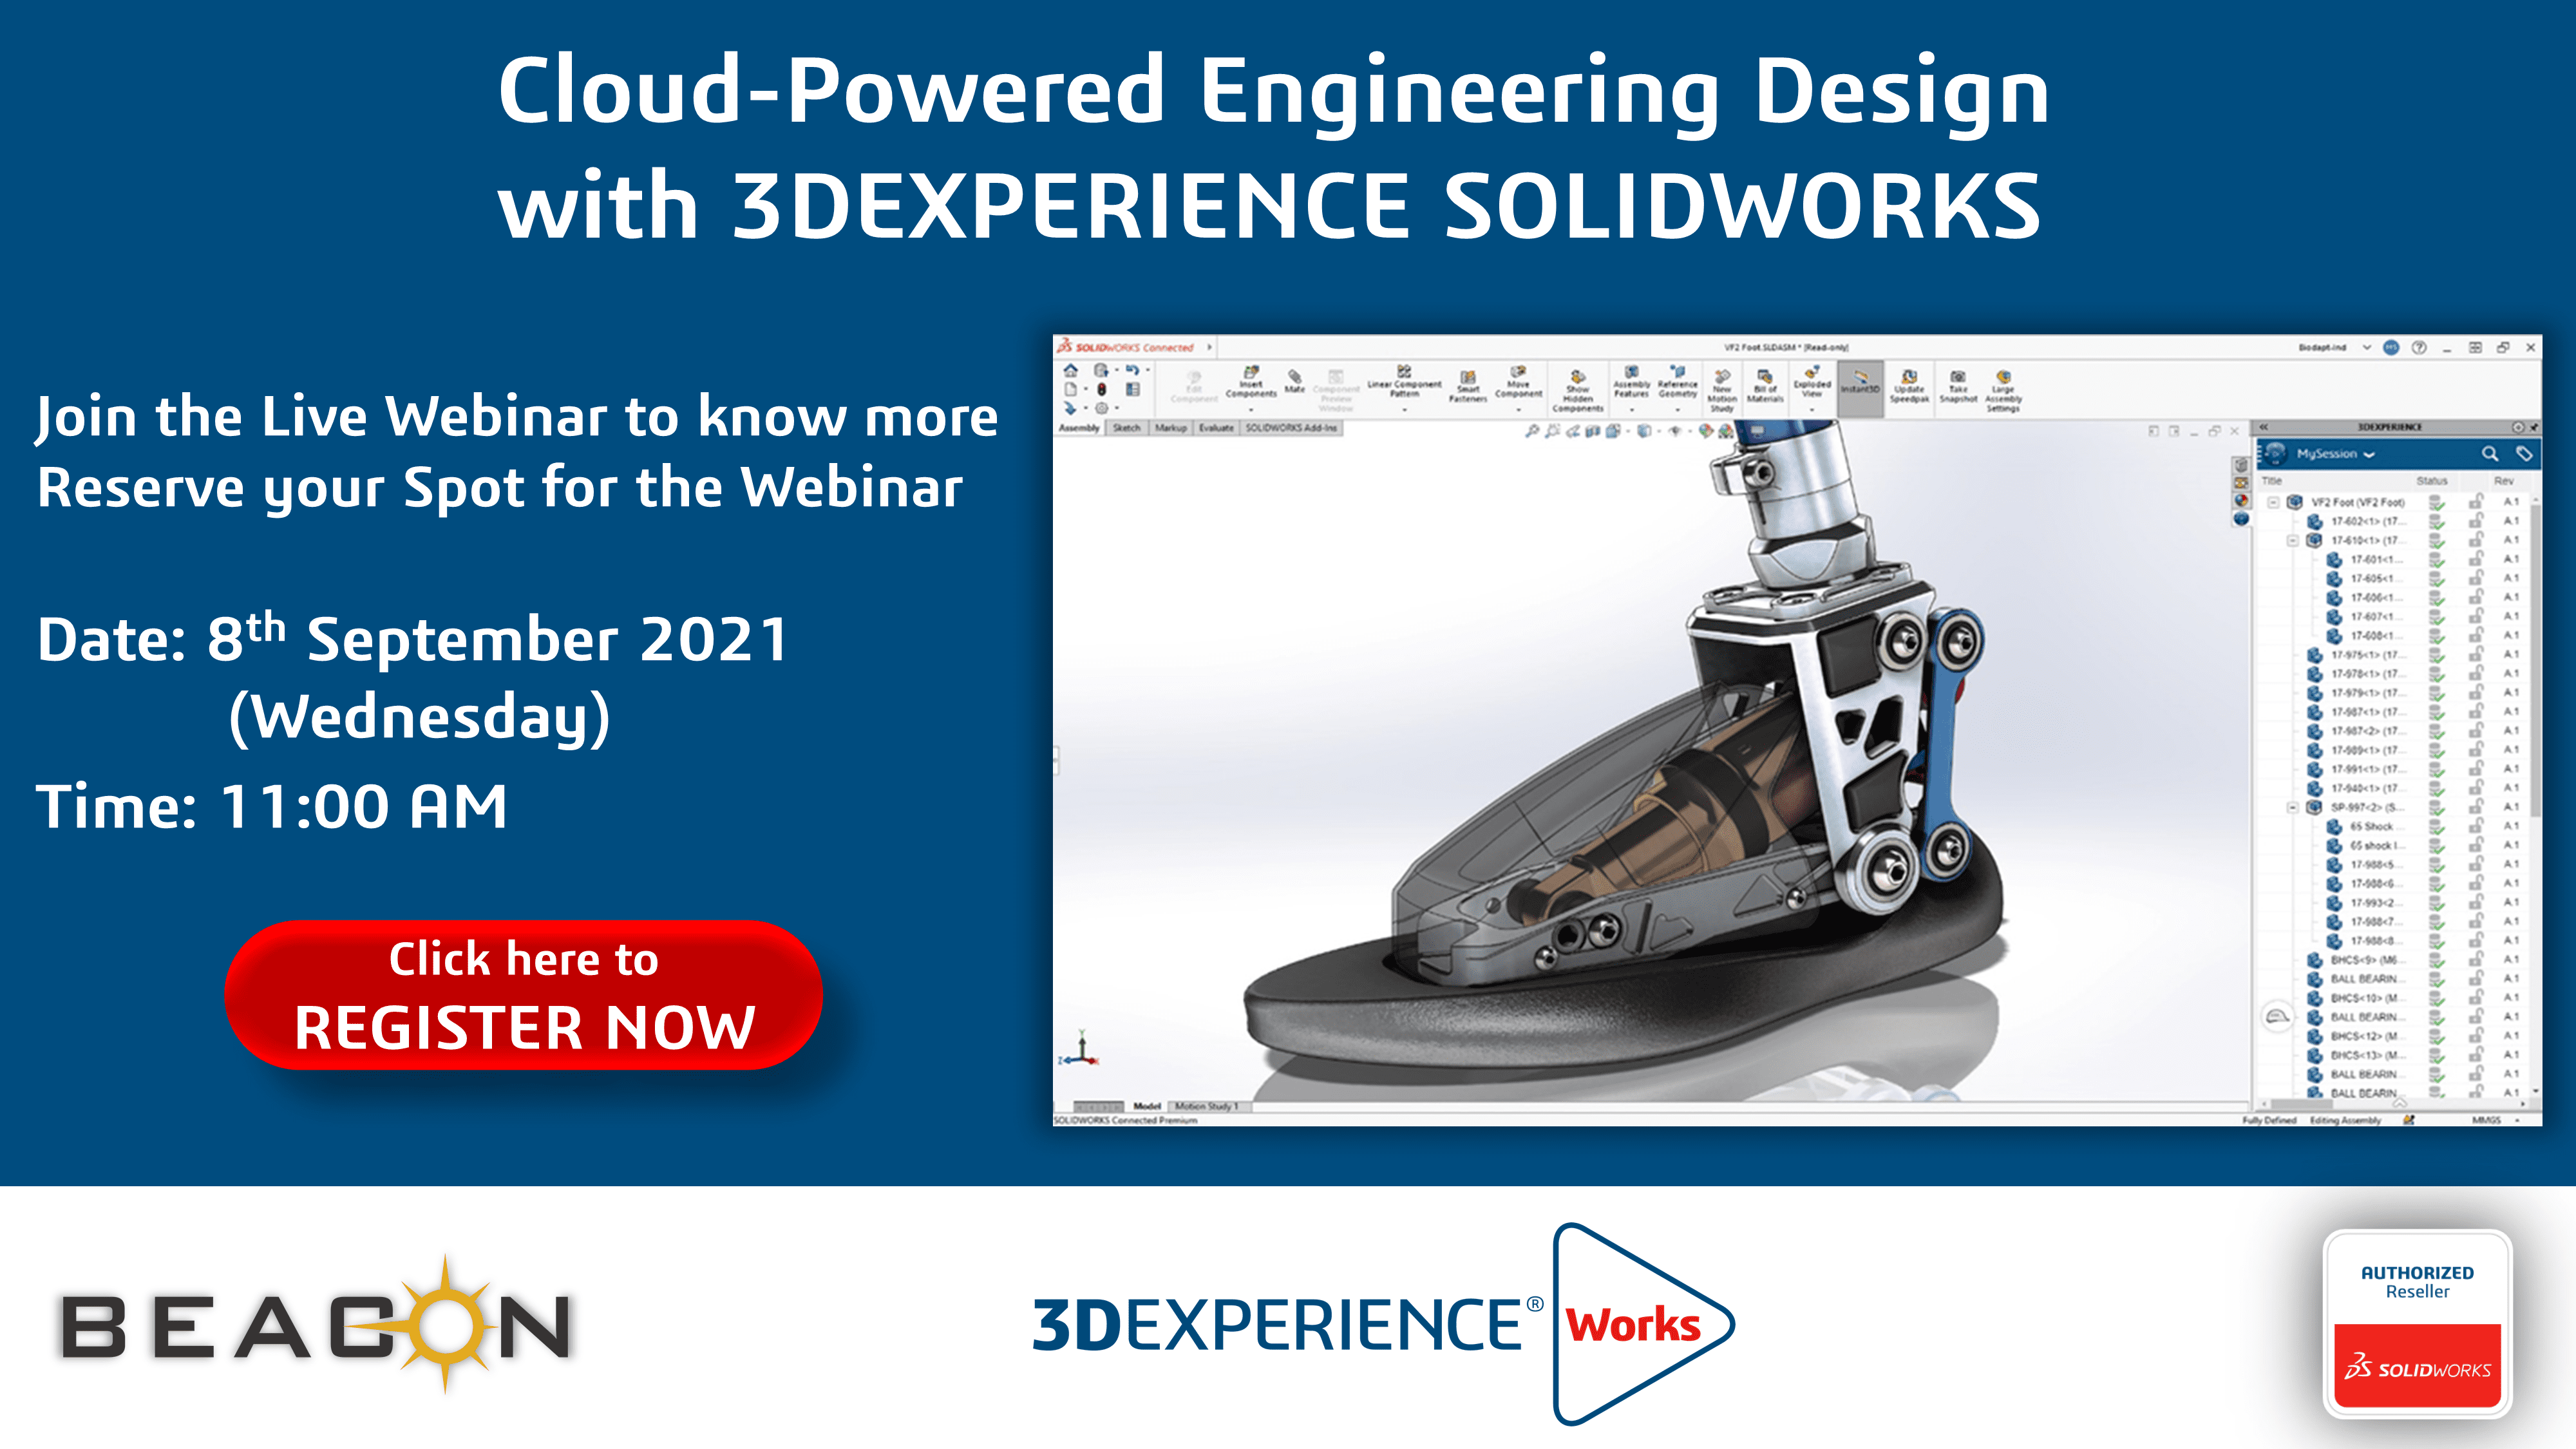 Cloud-Powered Engineering Design with 3DEXPERIENCE SOLIDWORKS